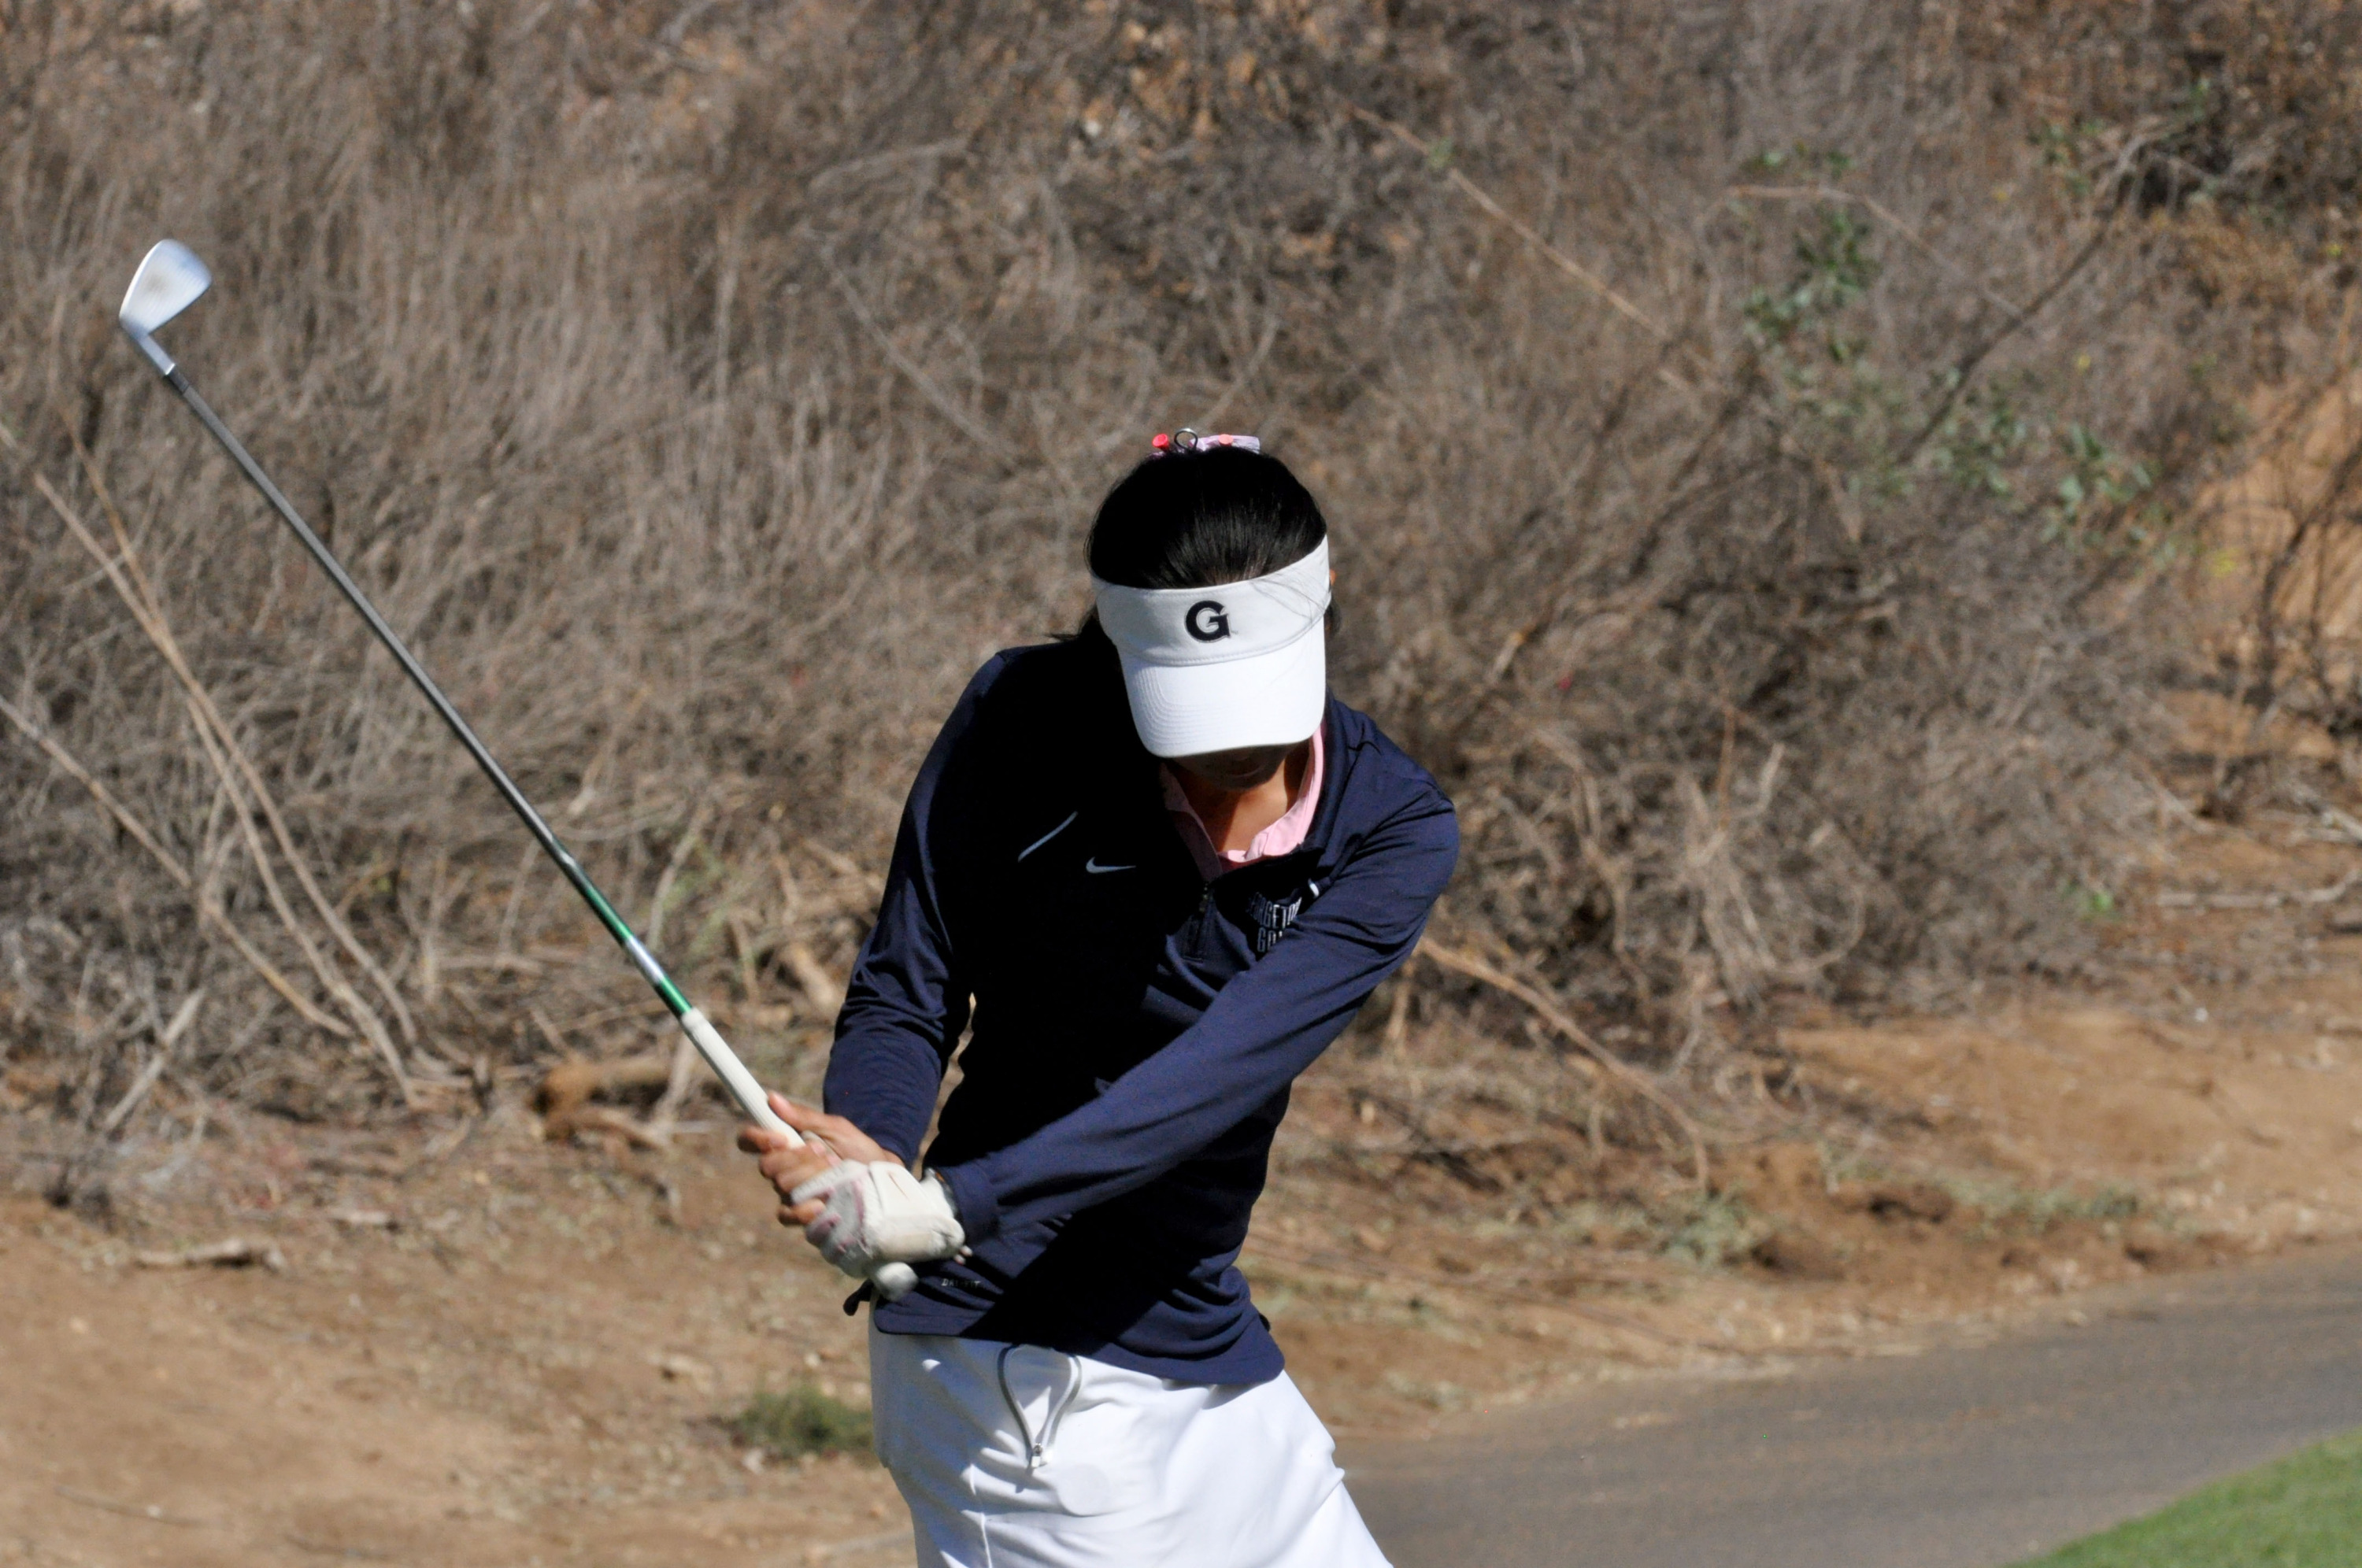 The Georgetown women's golf team shot a 26-over par 314 in the first round of play at the JMU Eagle Landing Invitational.  The three-day, 54-hole tournament, hosted by James Madison University, is being played at Eagle Landing Golf Club (Par 72 - 6,208 yards) in Orange Park, Fla.